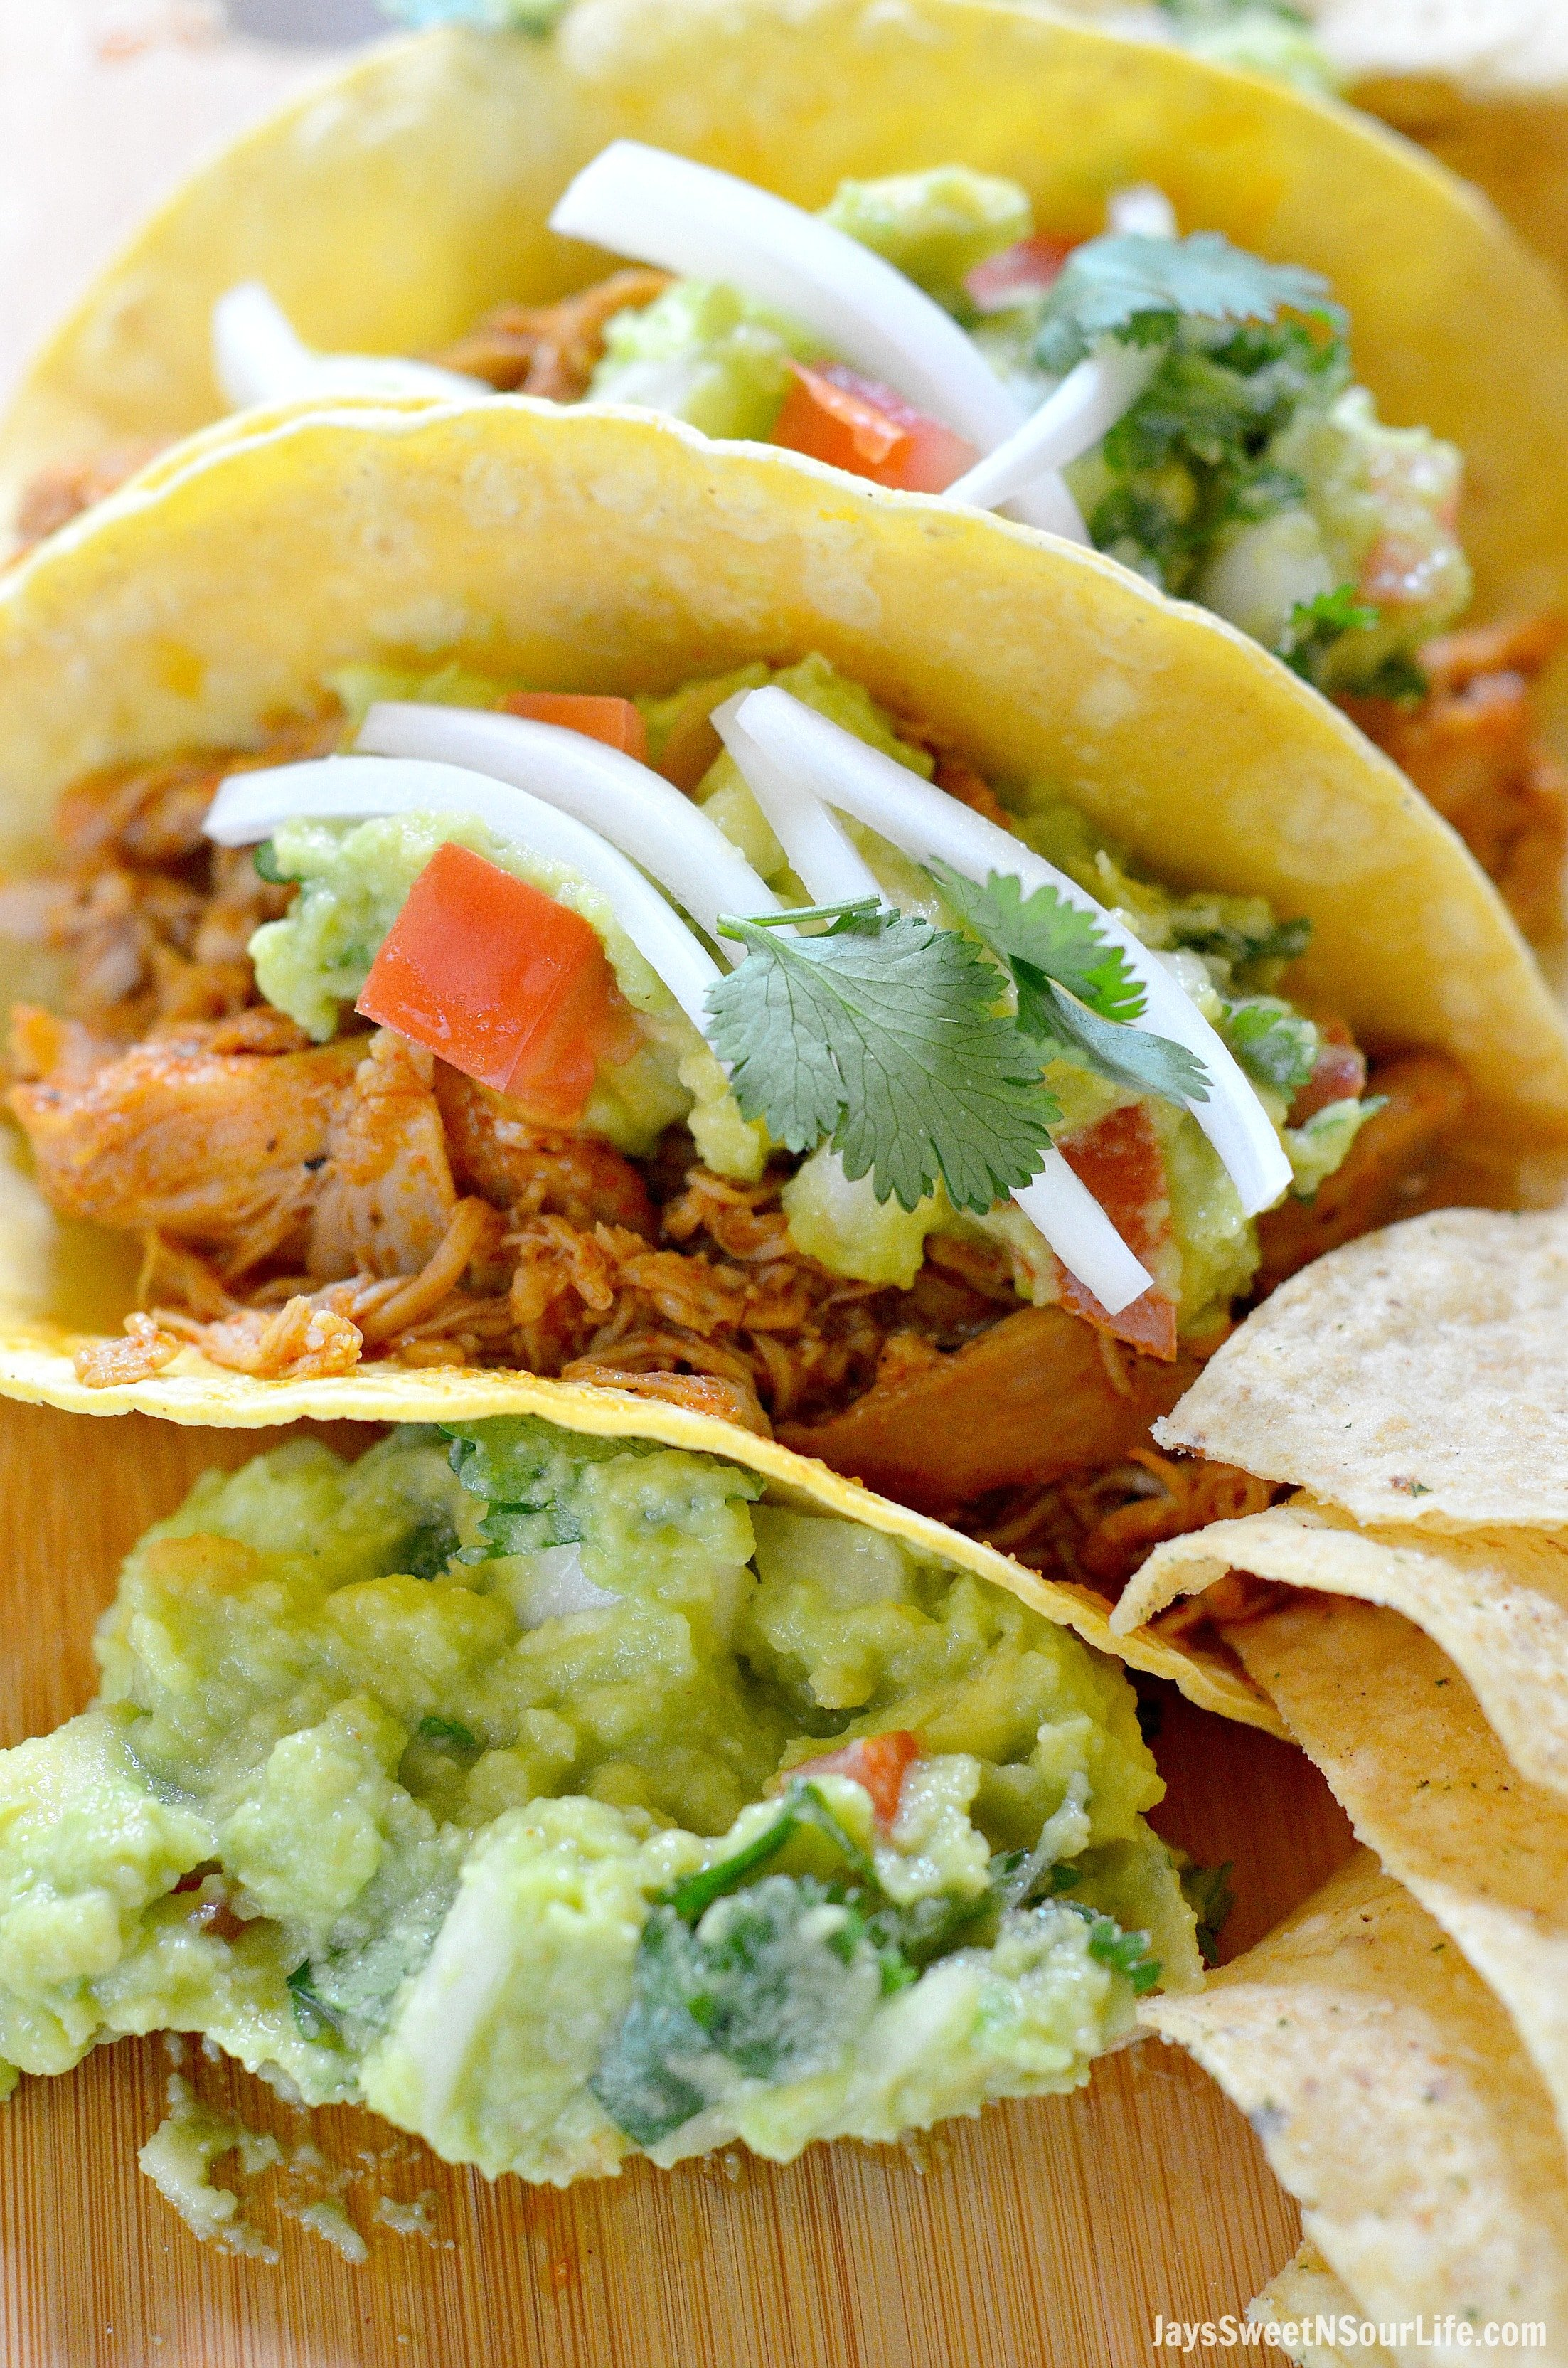 Chicken Tacos with Homemade Guacamole